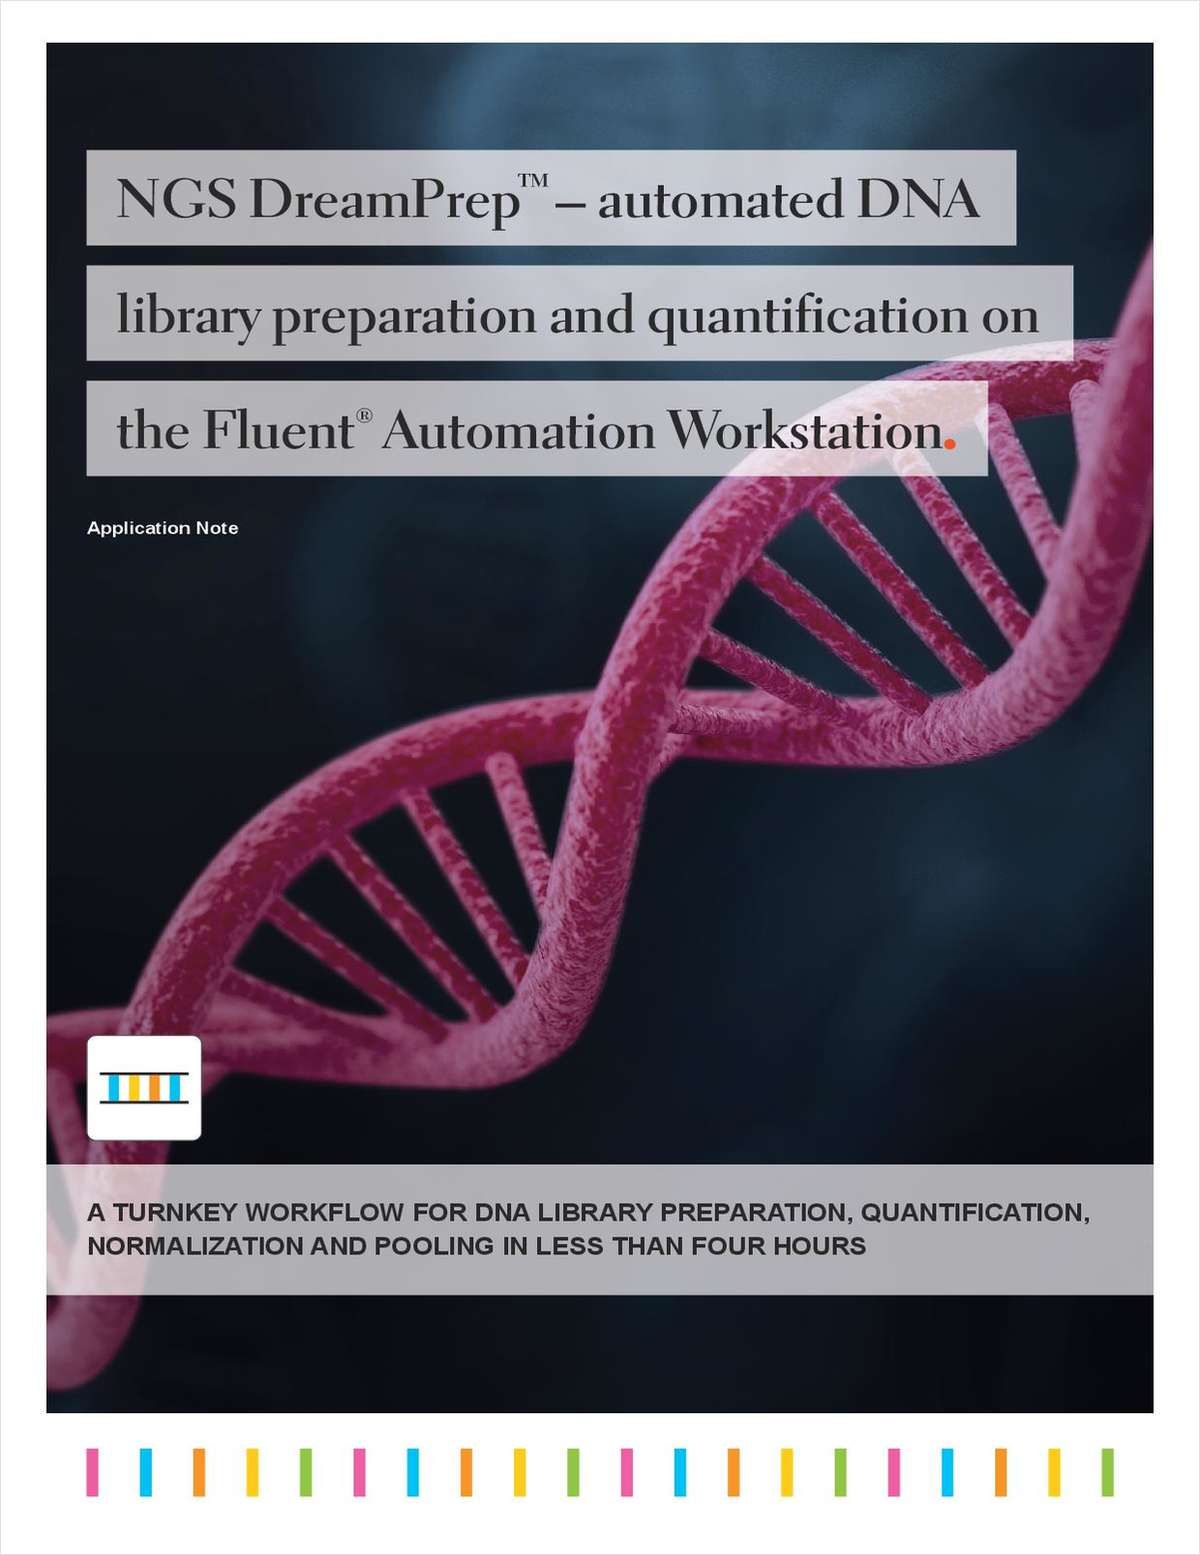 DreamPrep NGS-- Automated DNA Library Preparation and Quantification on The Fluent Automation Workstation